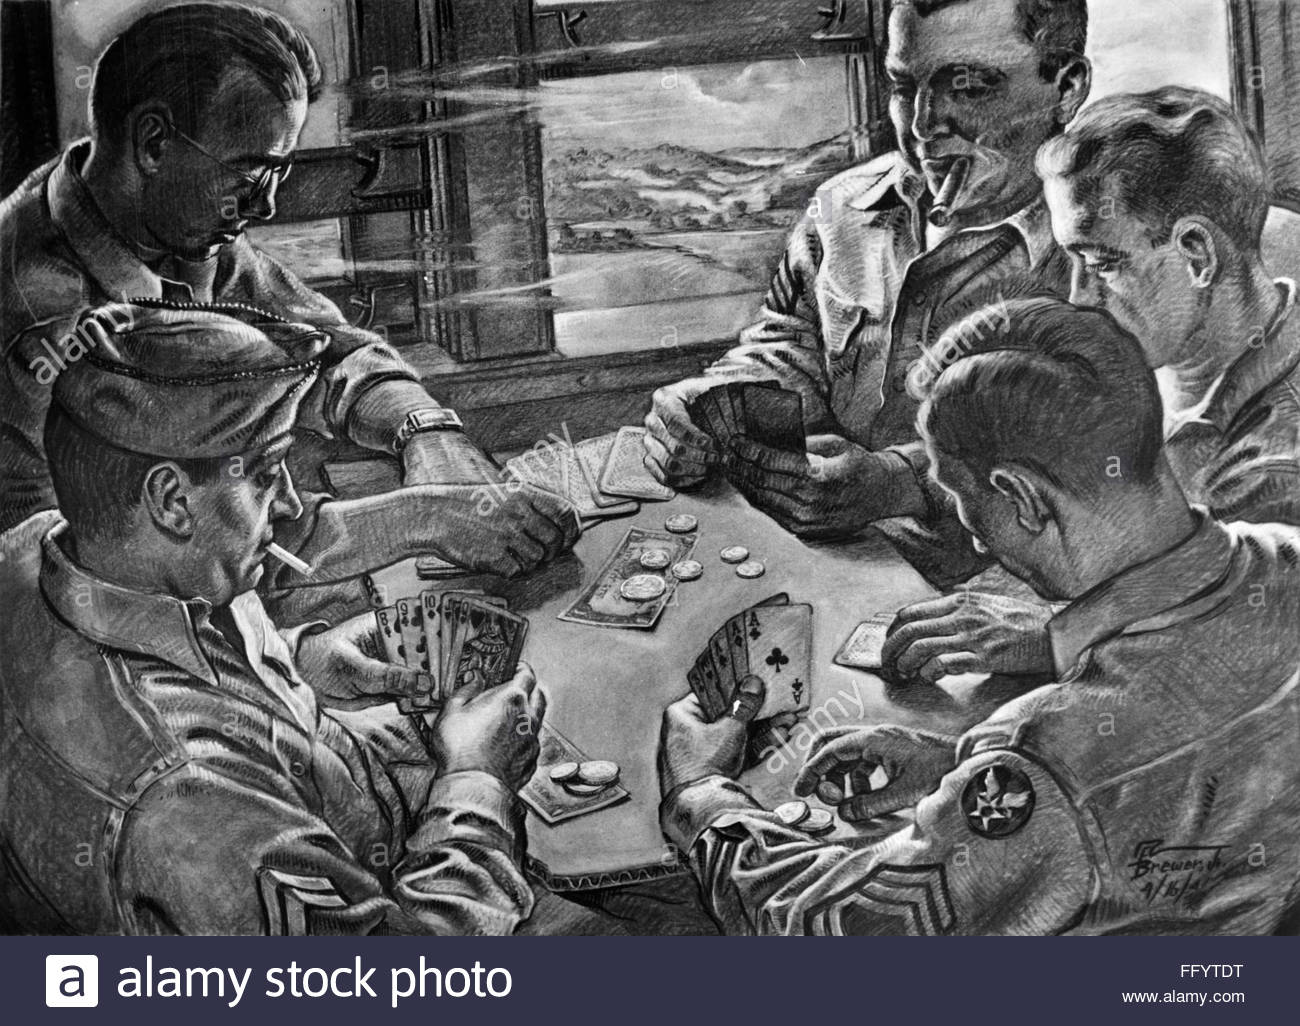 world-war-ii-card-game-nen-route-american-soldiers-playing-a-game-FFYTDT.jpg